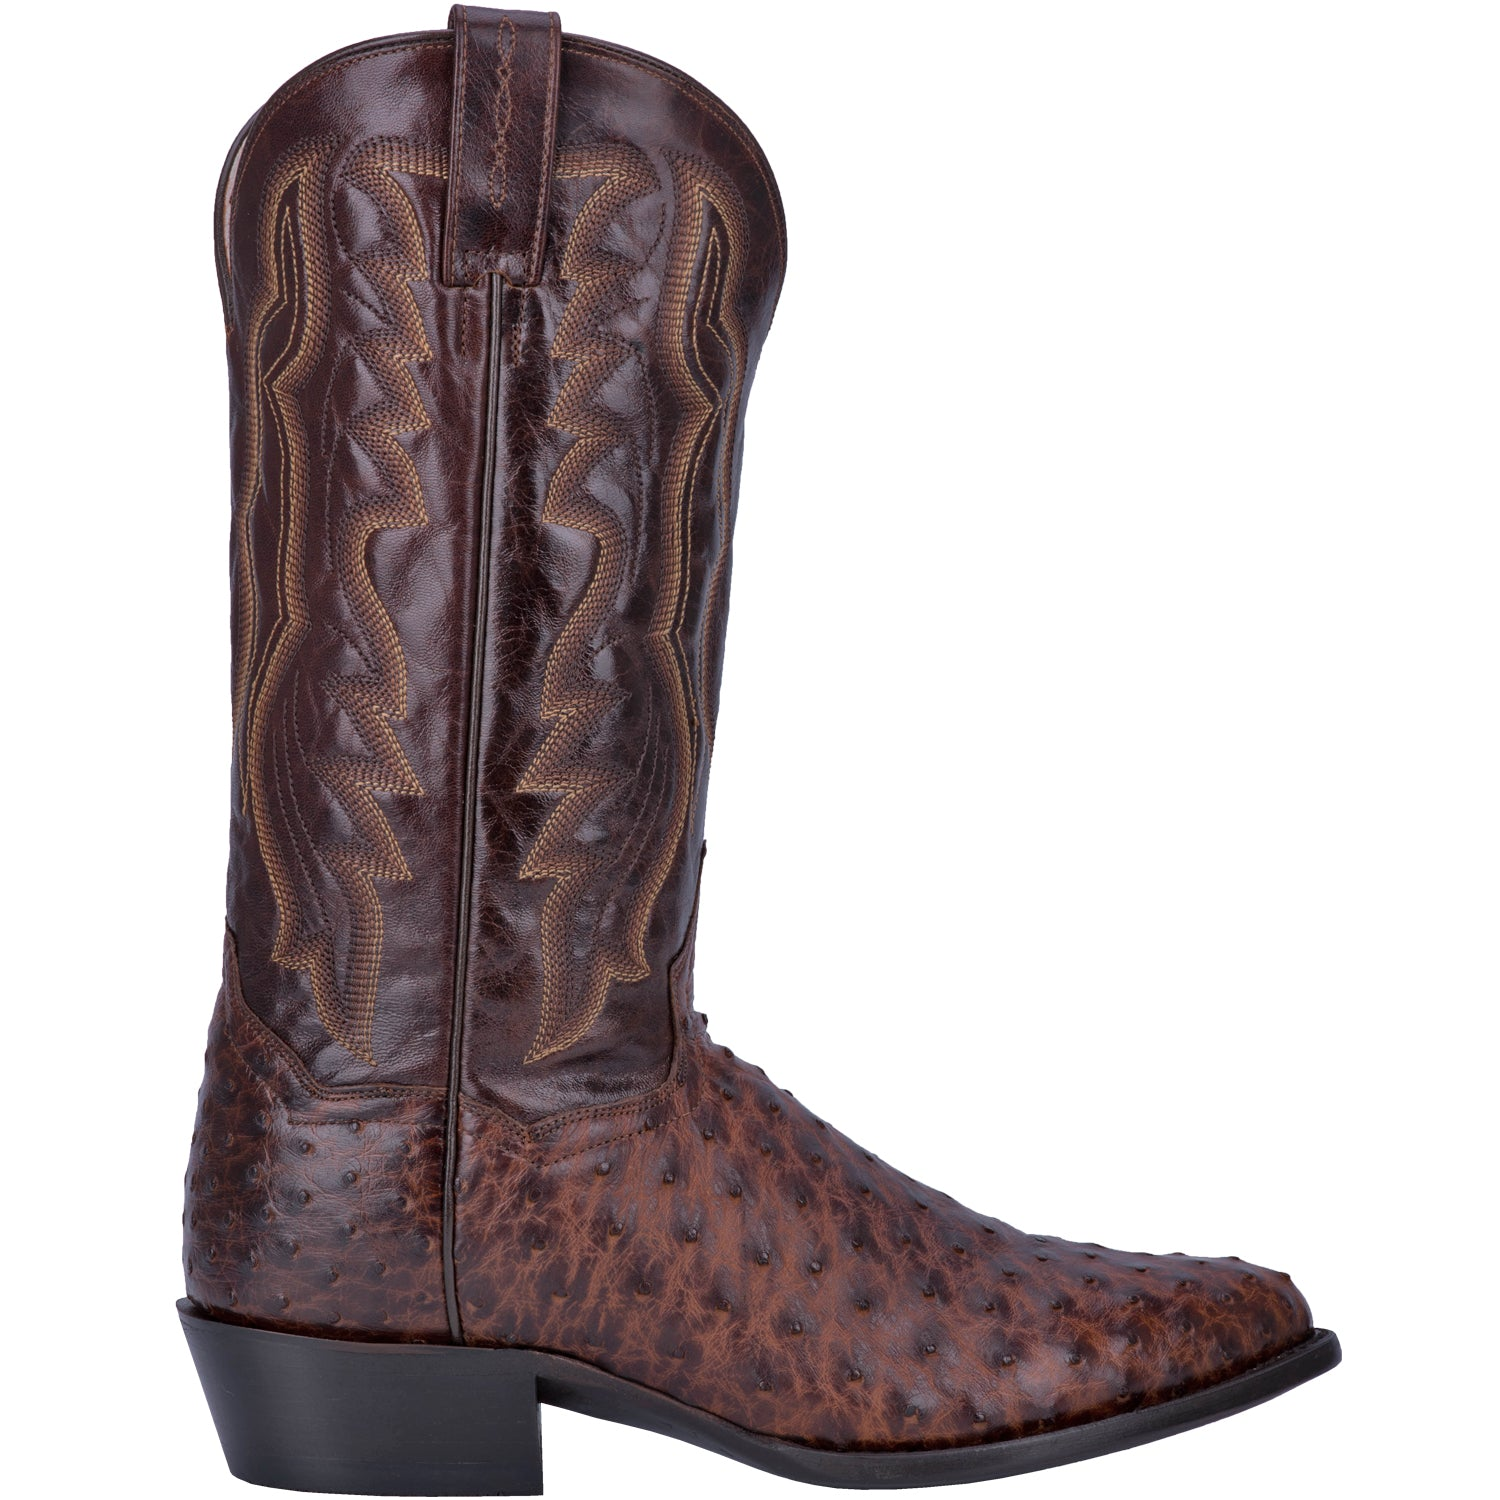 PERSHING FULL QUILL OSTRICH BOOT 4254027251754